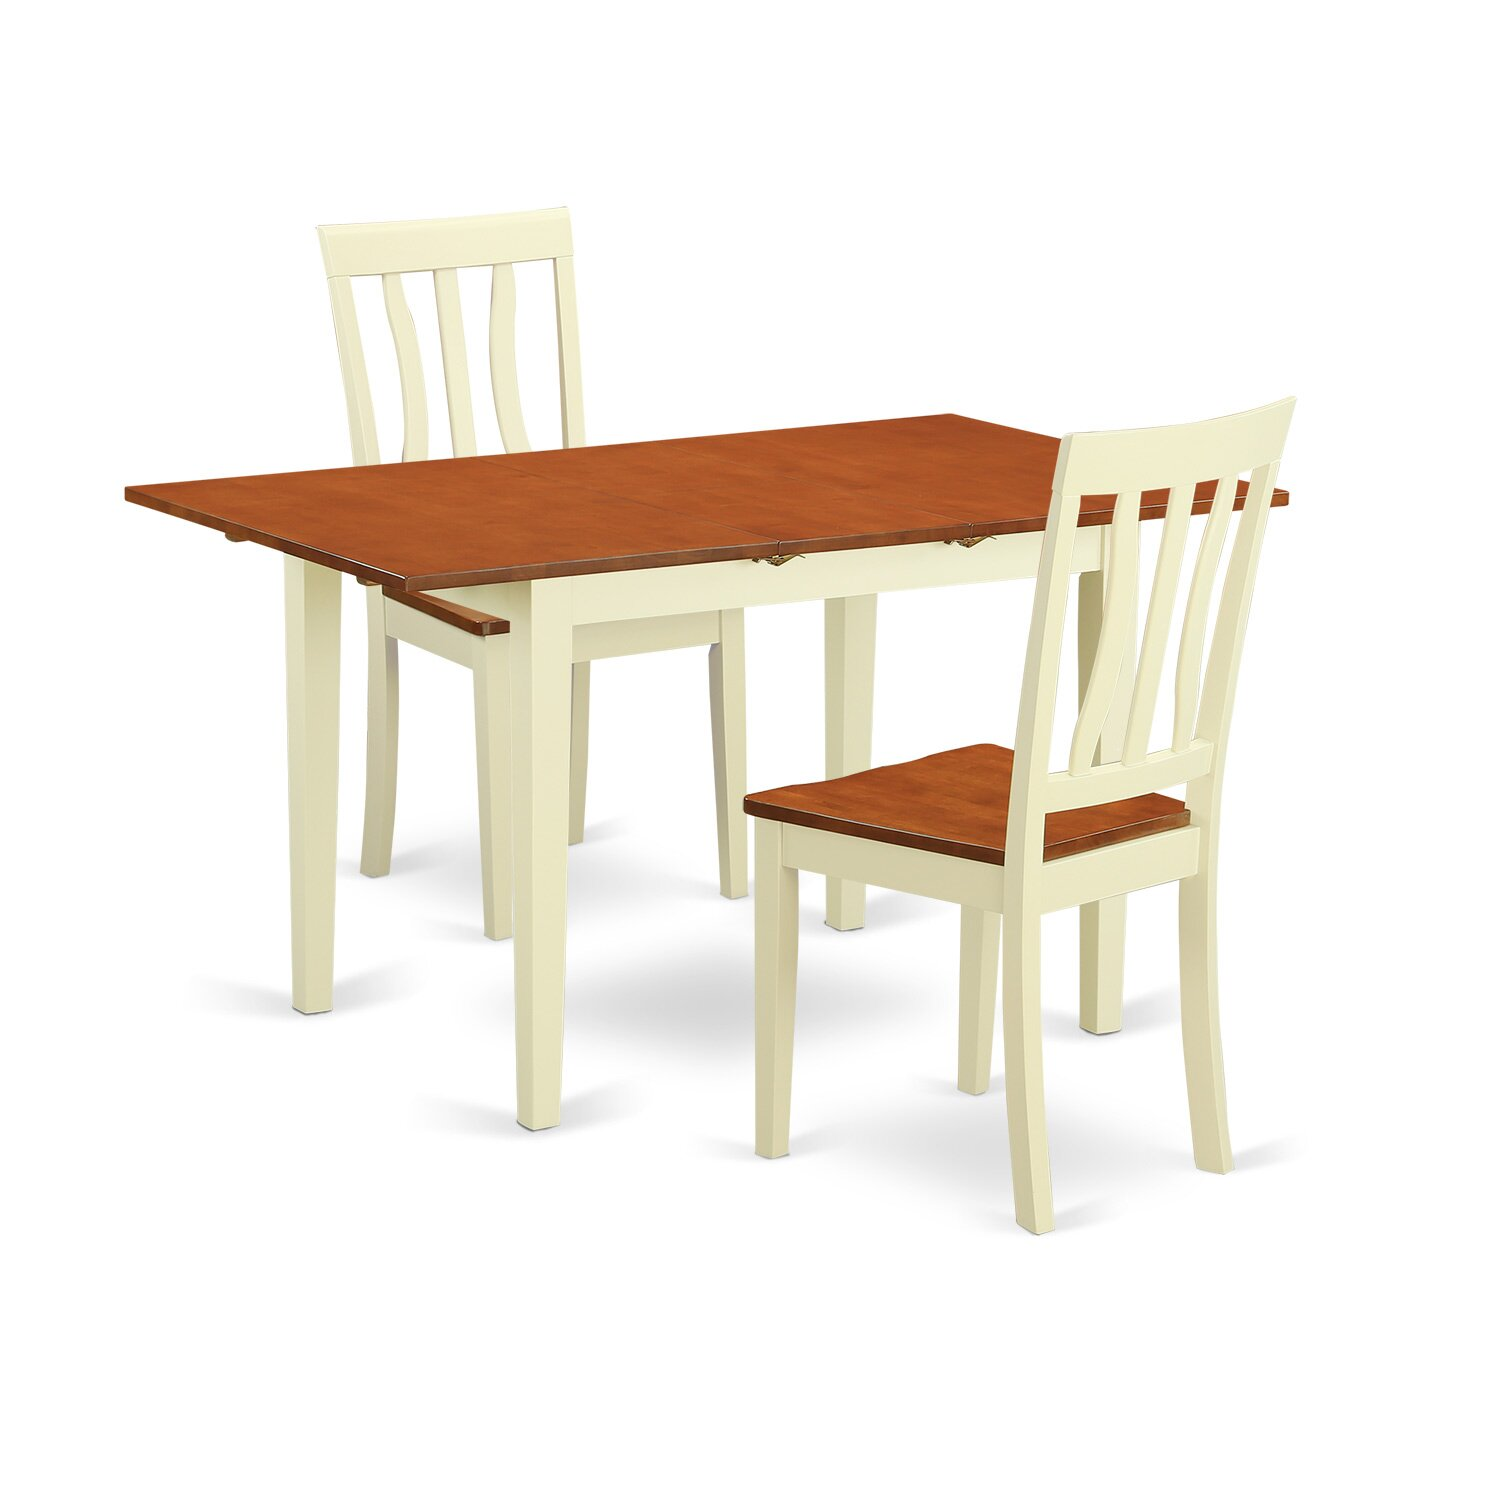 Wooden importers 3 piece dining set reviews wayfair for Dining room table 2